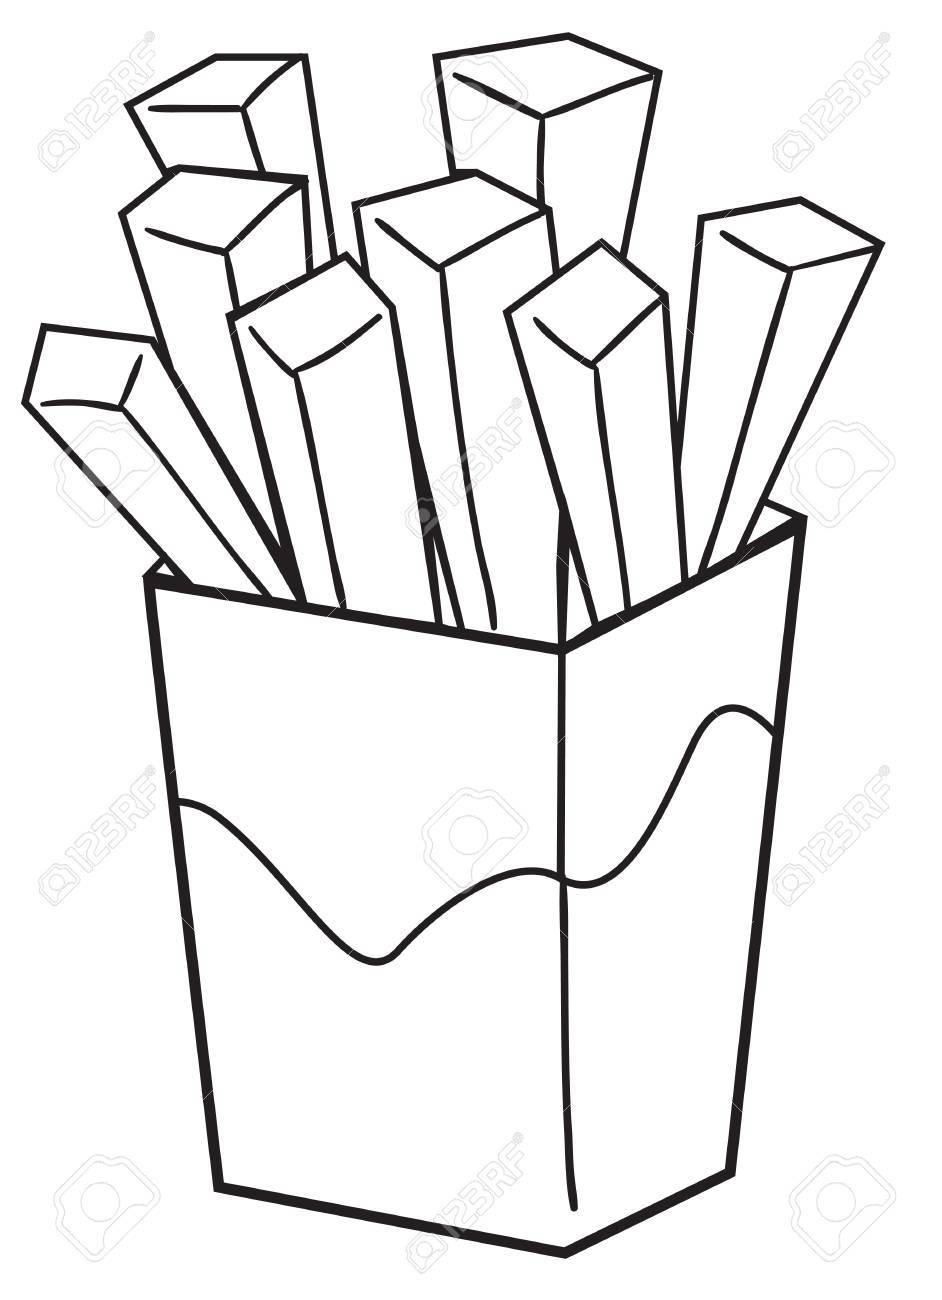 942x1300 Vector Illustration Of A French Fries In Black And White Outlined